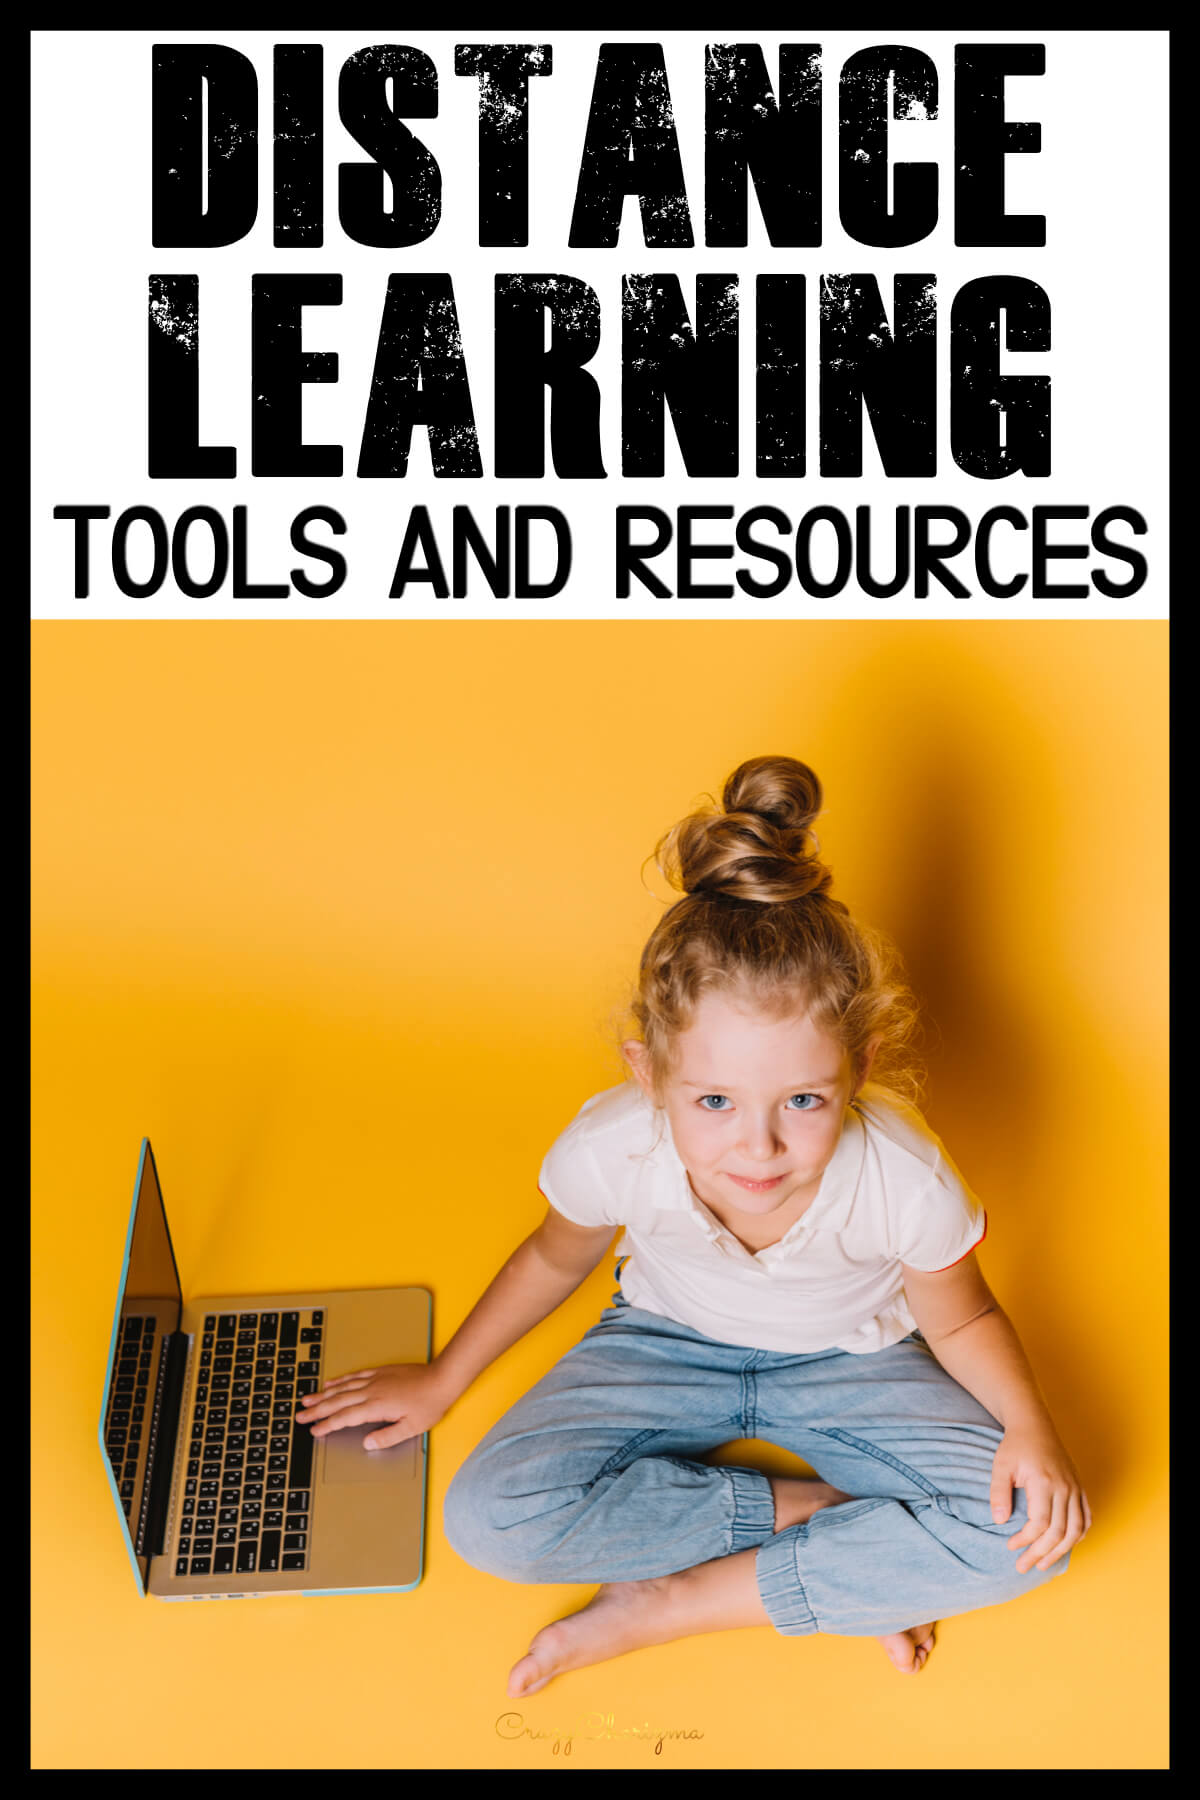 Even if your school is closed, don't panic. You can only control the controllable. Meaning, YOU can keep your students learning and engaged. Here are some tools and teaching resources to help you in remote learning.